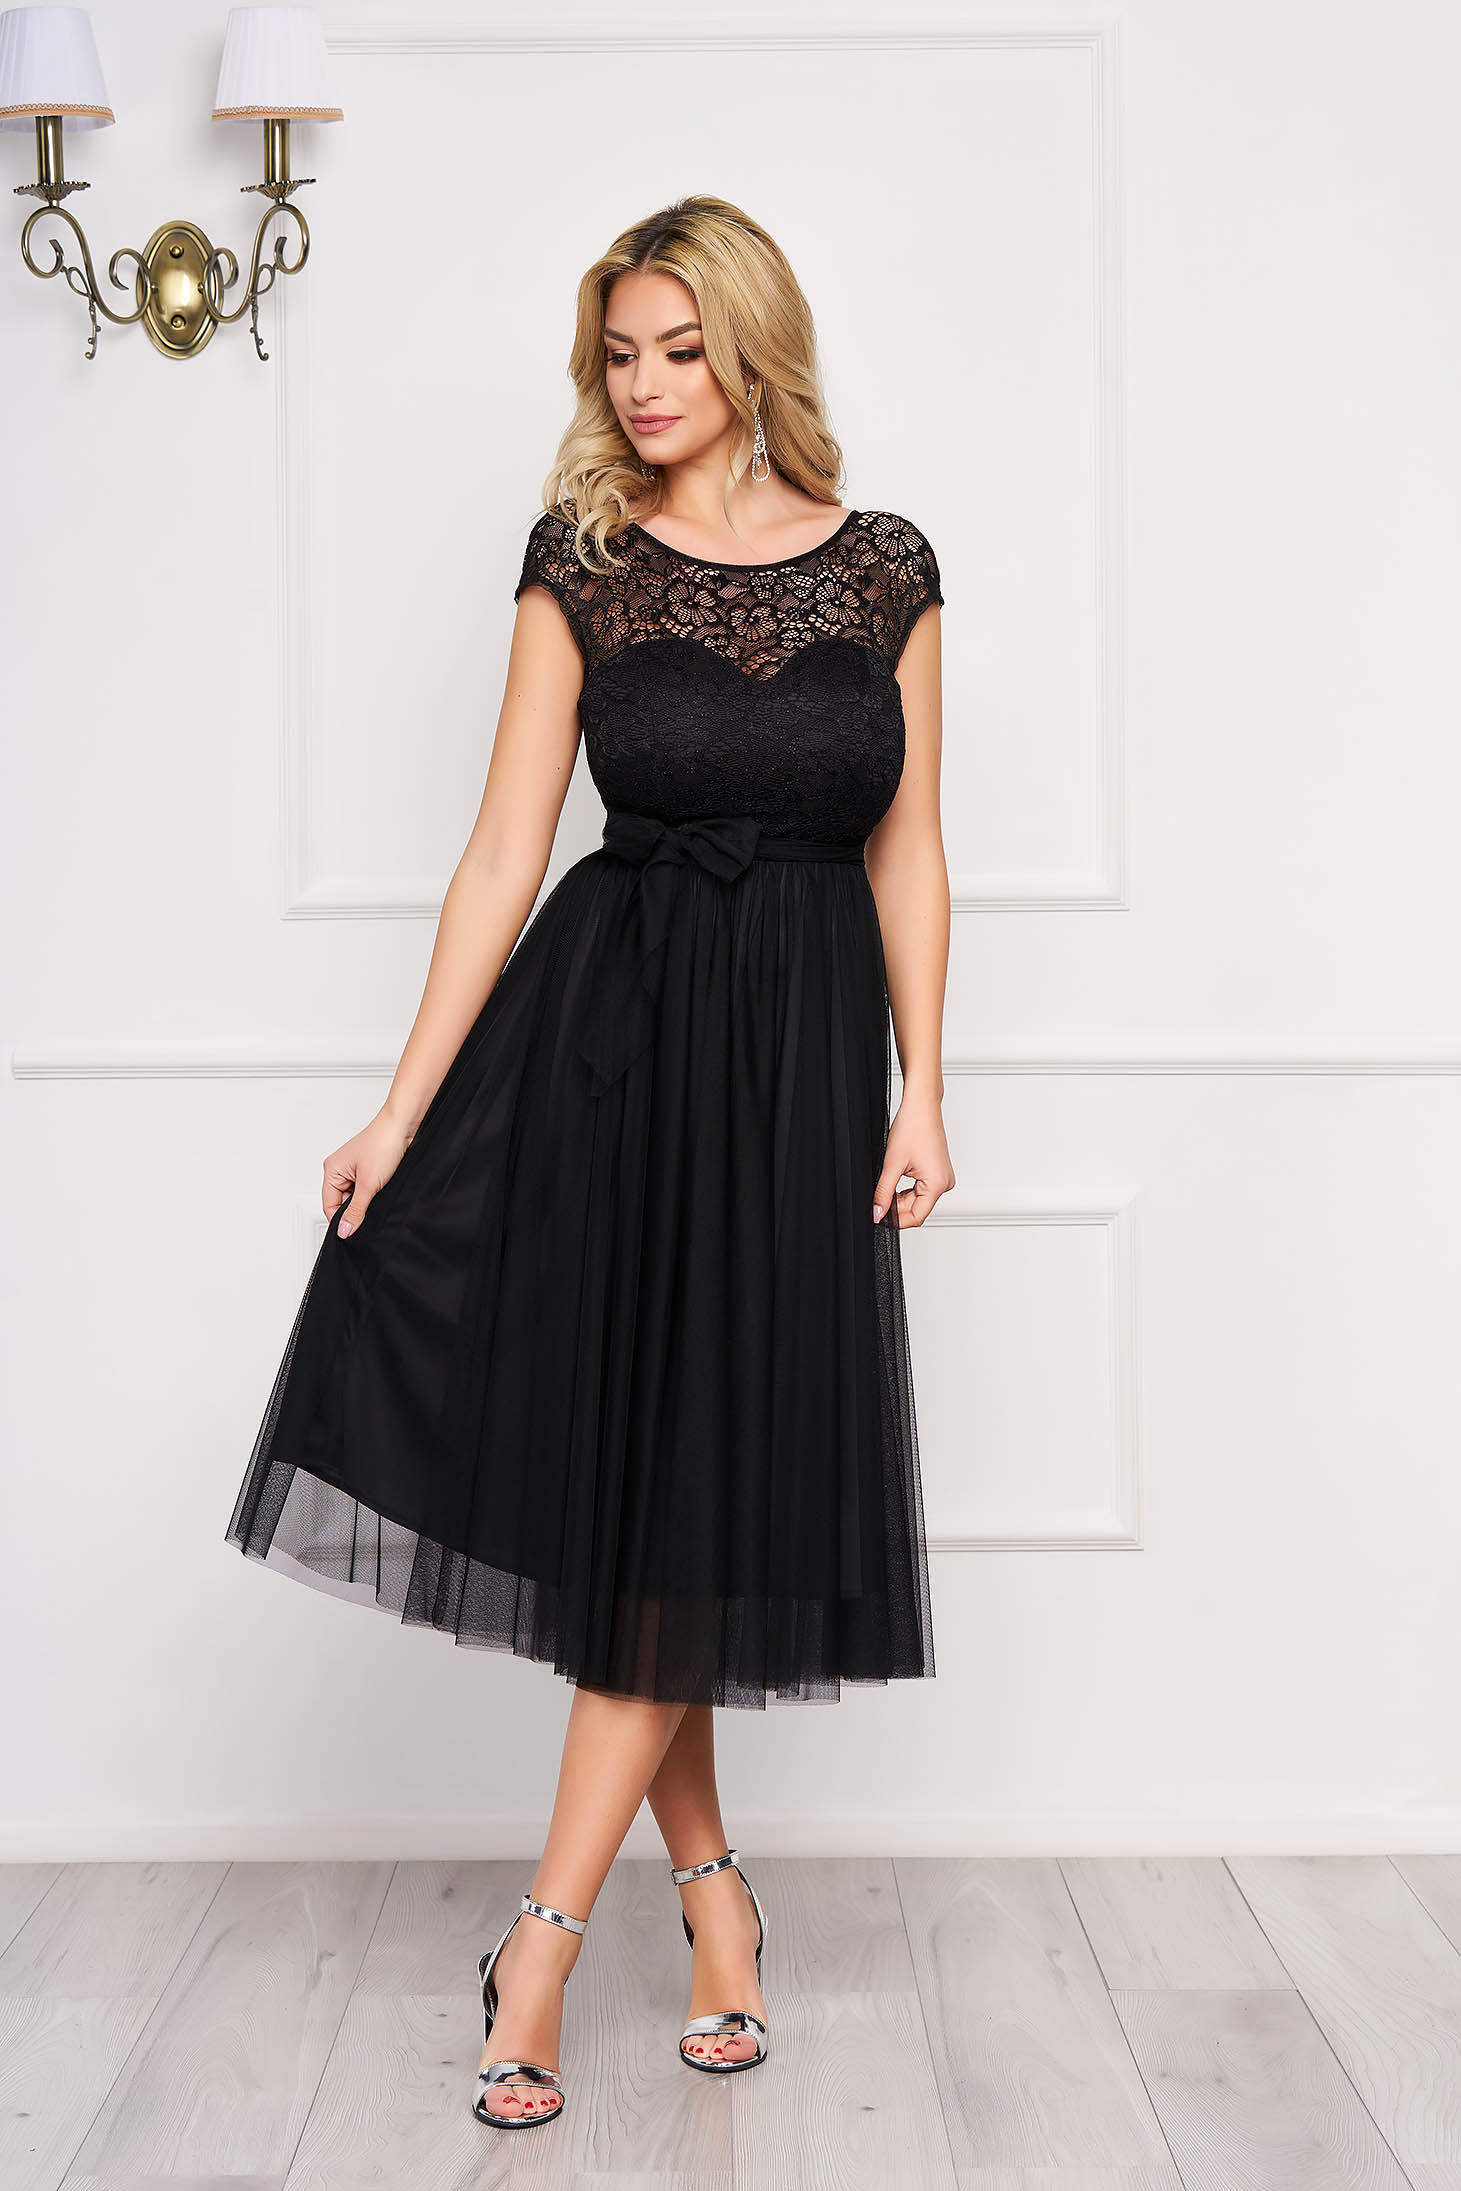 Dress StarShinerS black midi occasional cloche laced accessorized with tied waistband